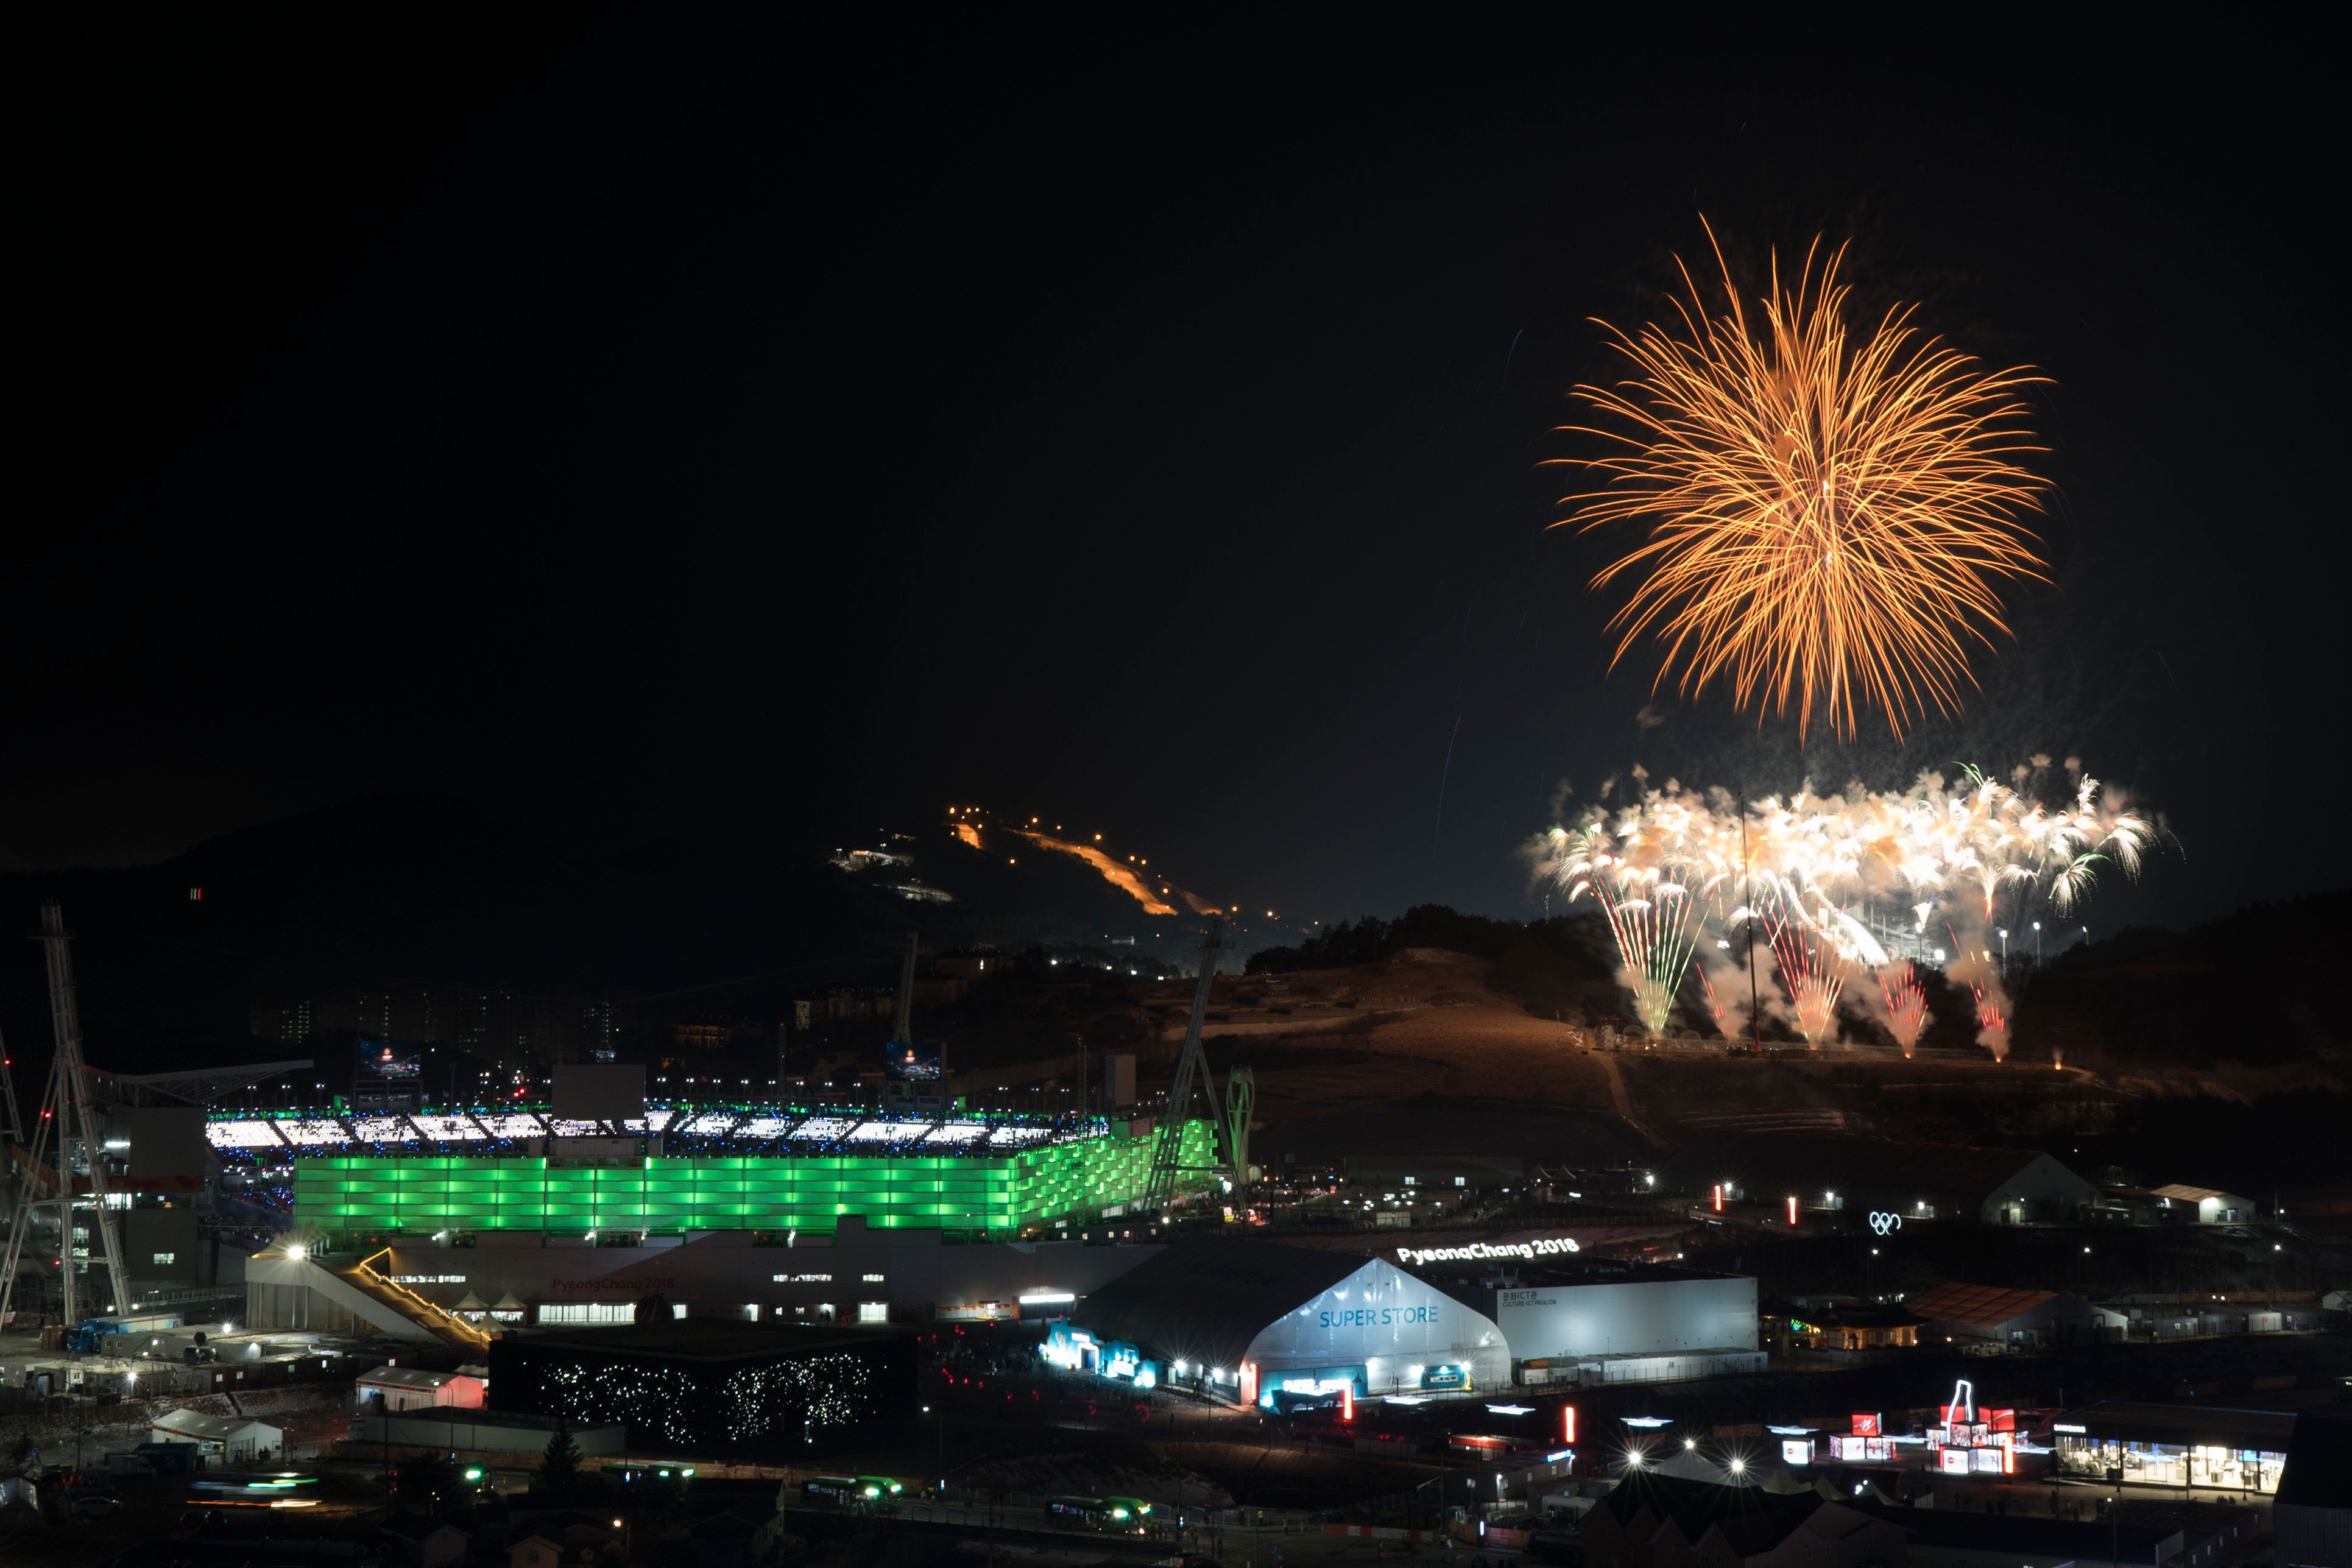 The day with the most tweets was that of the 2018 Winter Olympics closing ceremony.